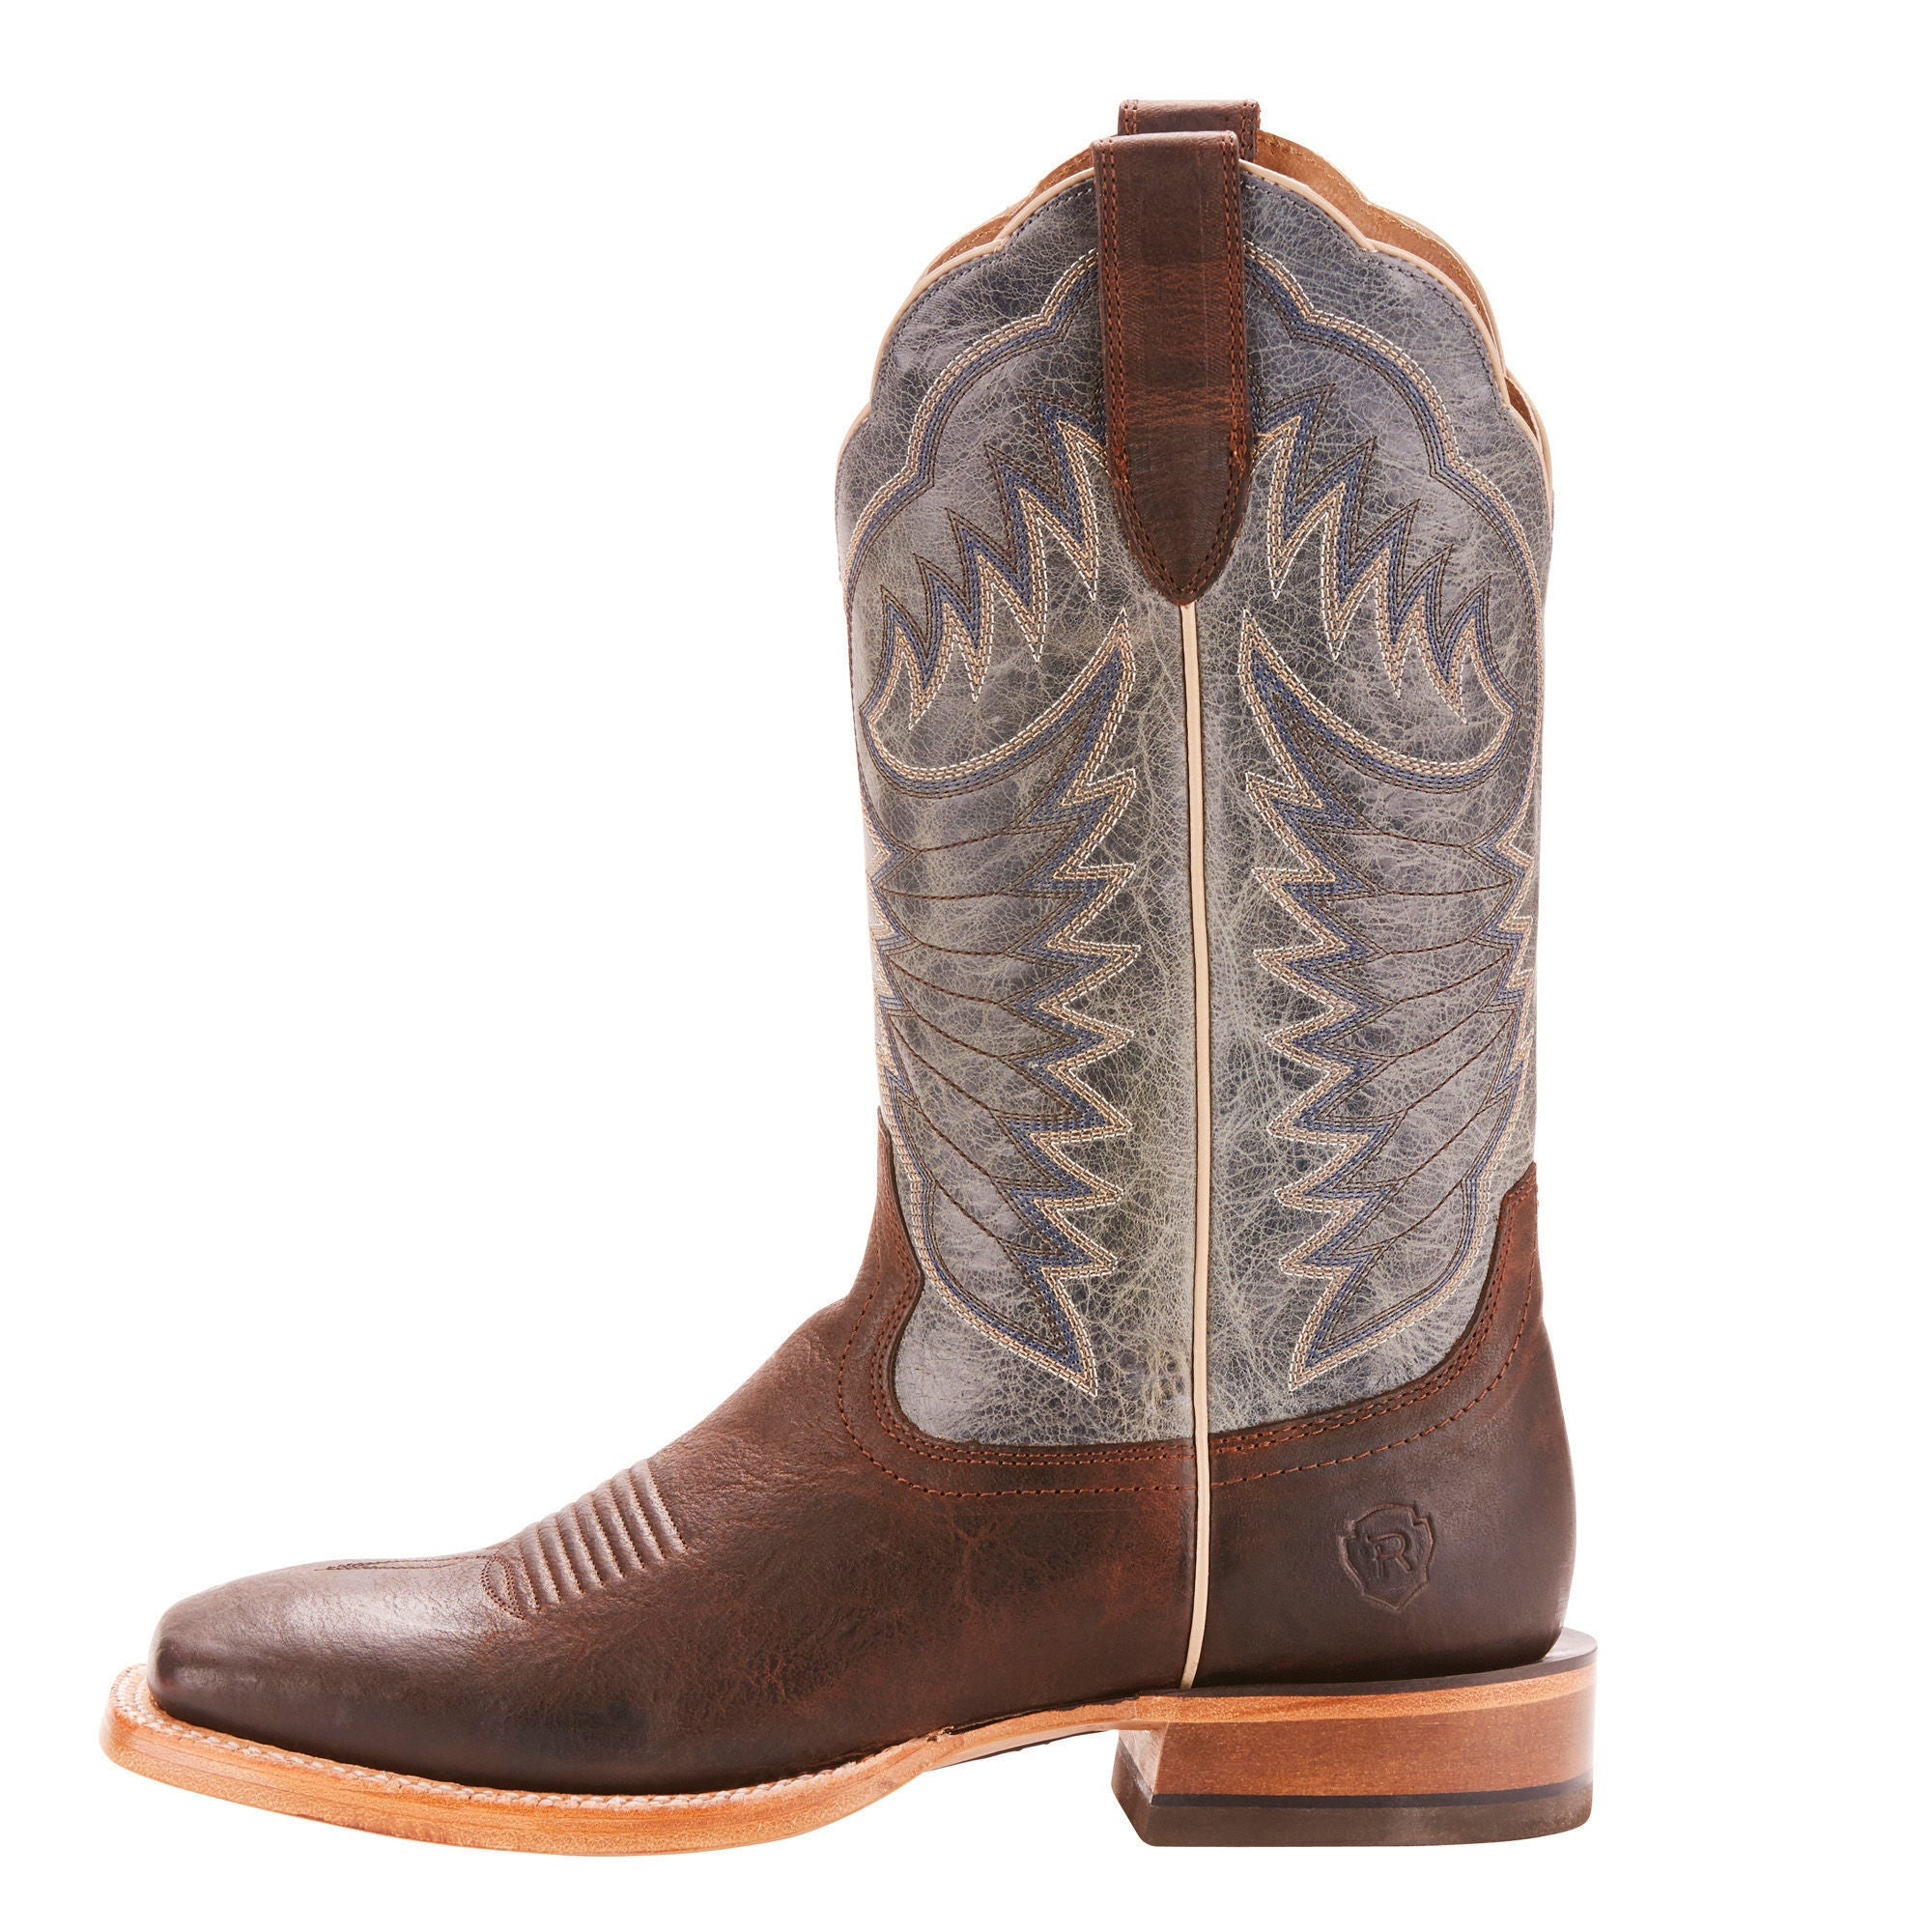 Men's Ariat Relentless Record Breaker Wide Square Toe Western Boot